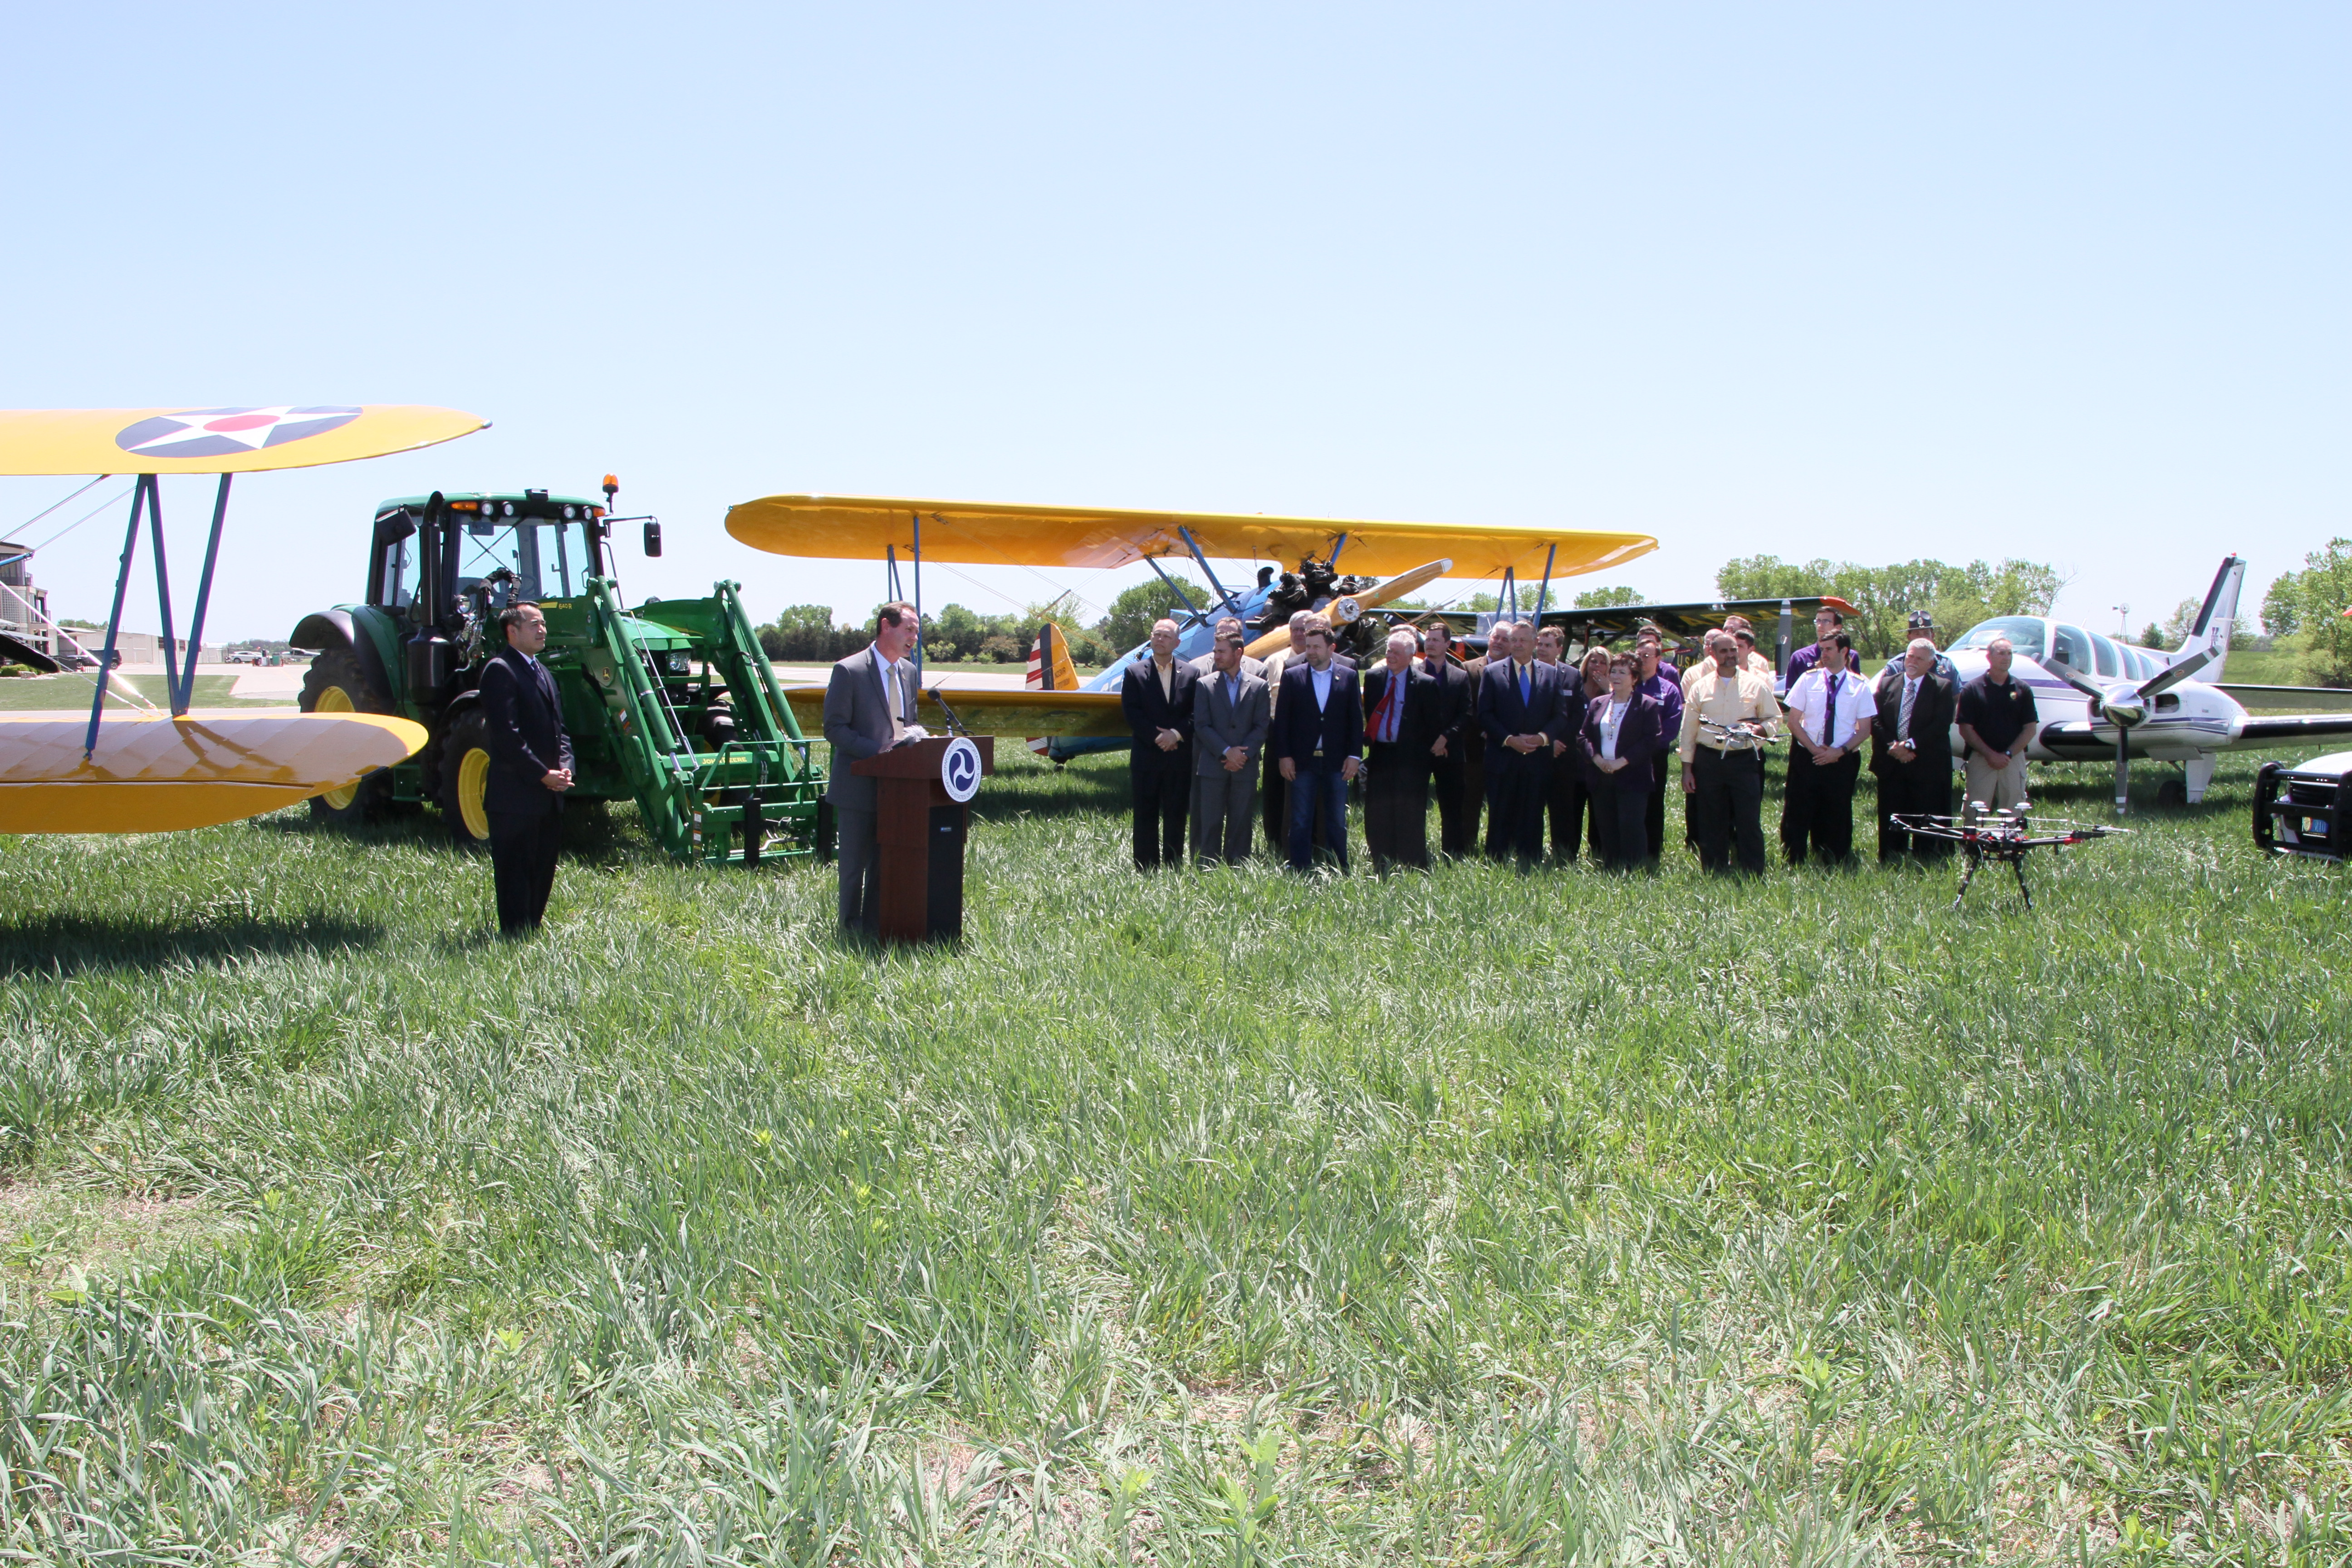 U.S. Department of Transportation Selects Kansas As Participant in Unmanned Aircraft Systems Integration Pilot Program